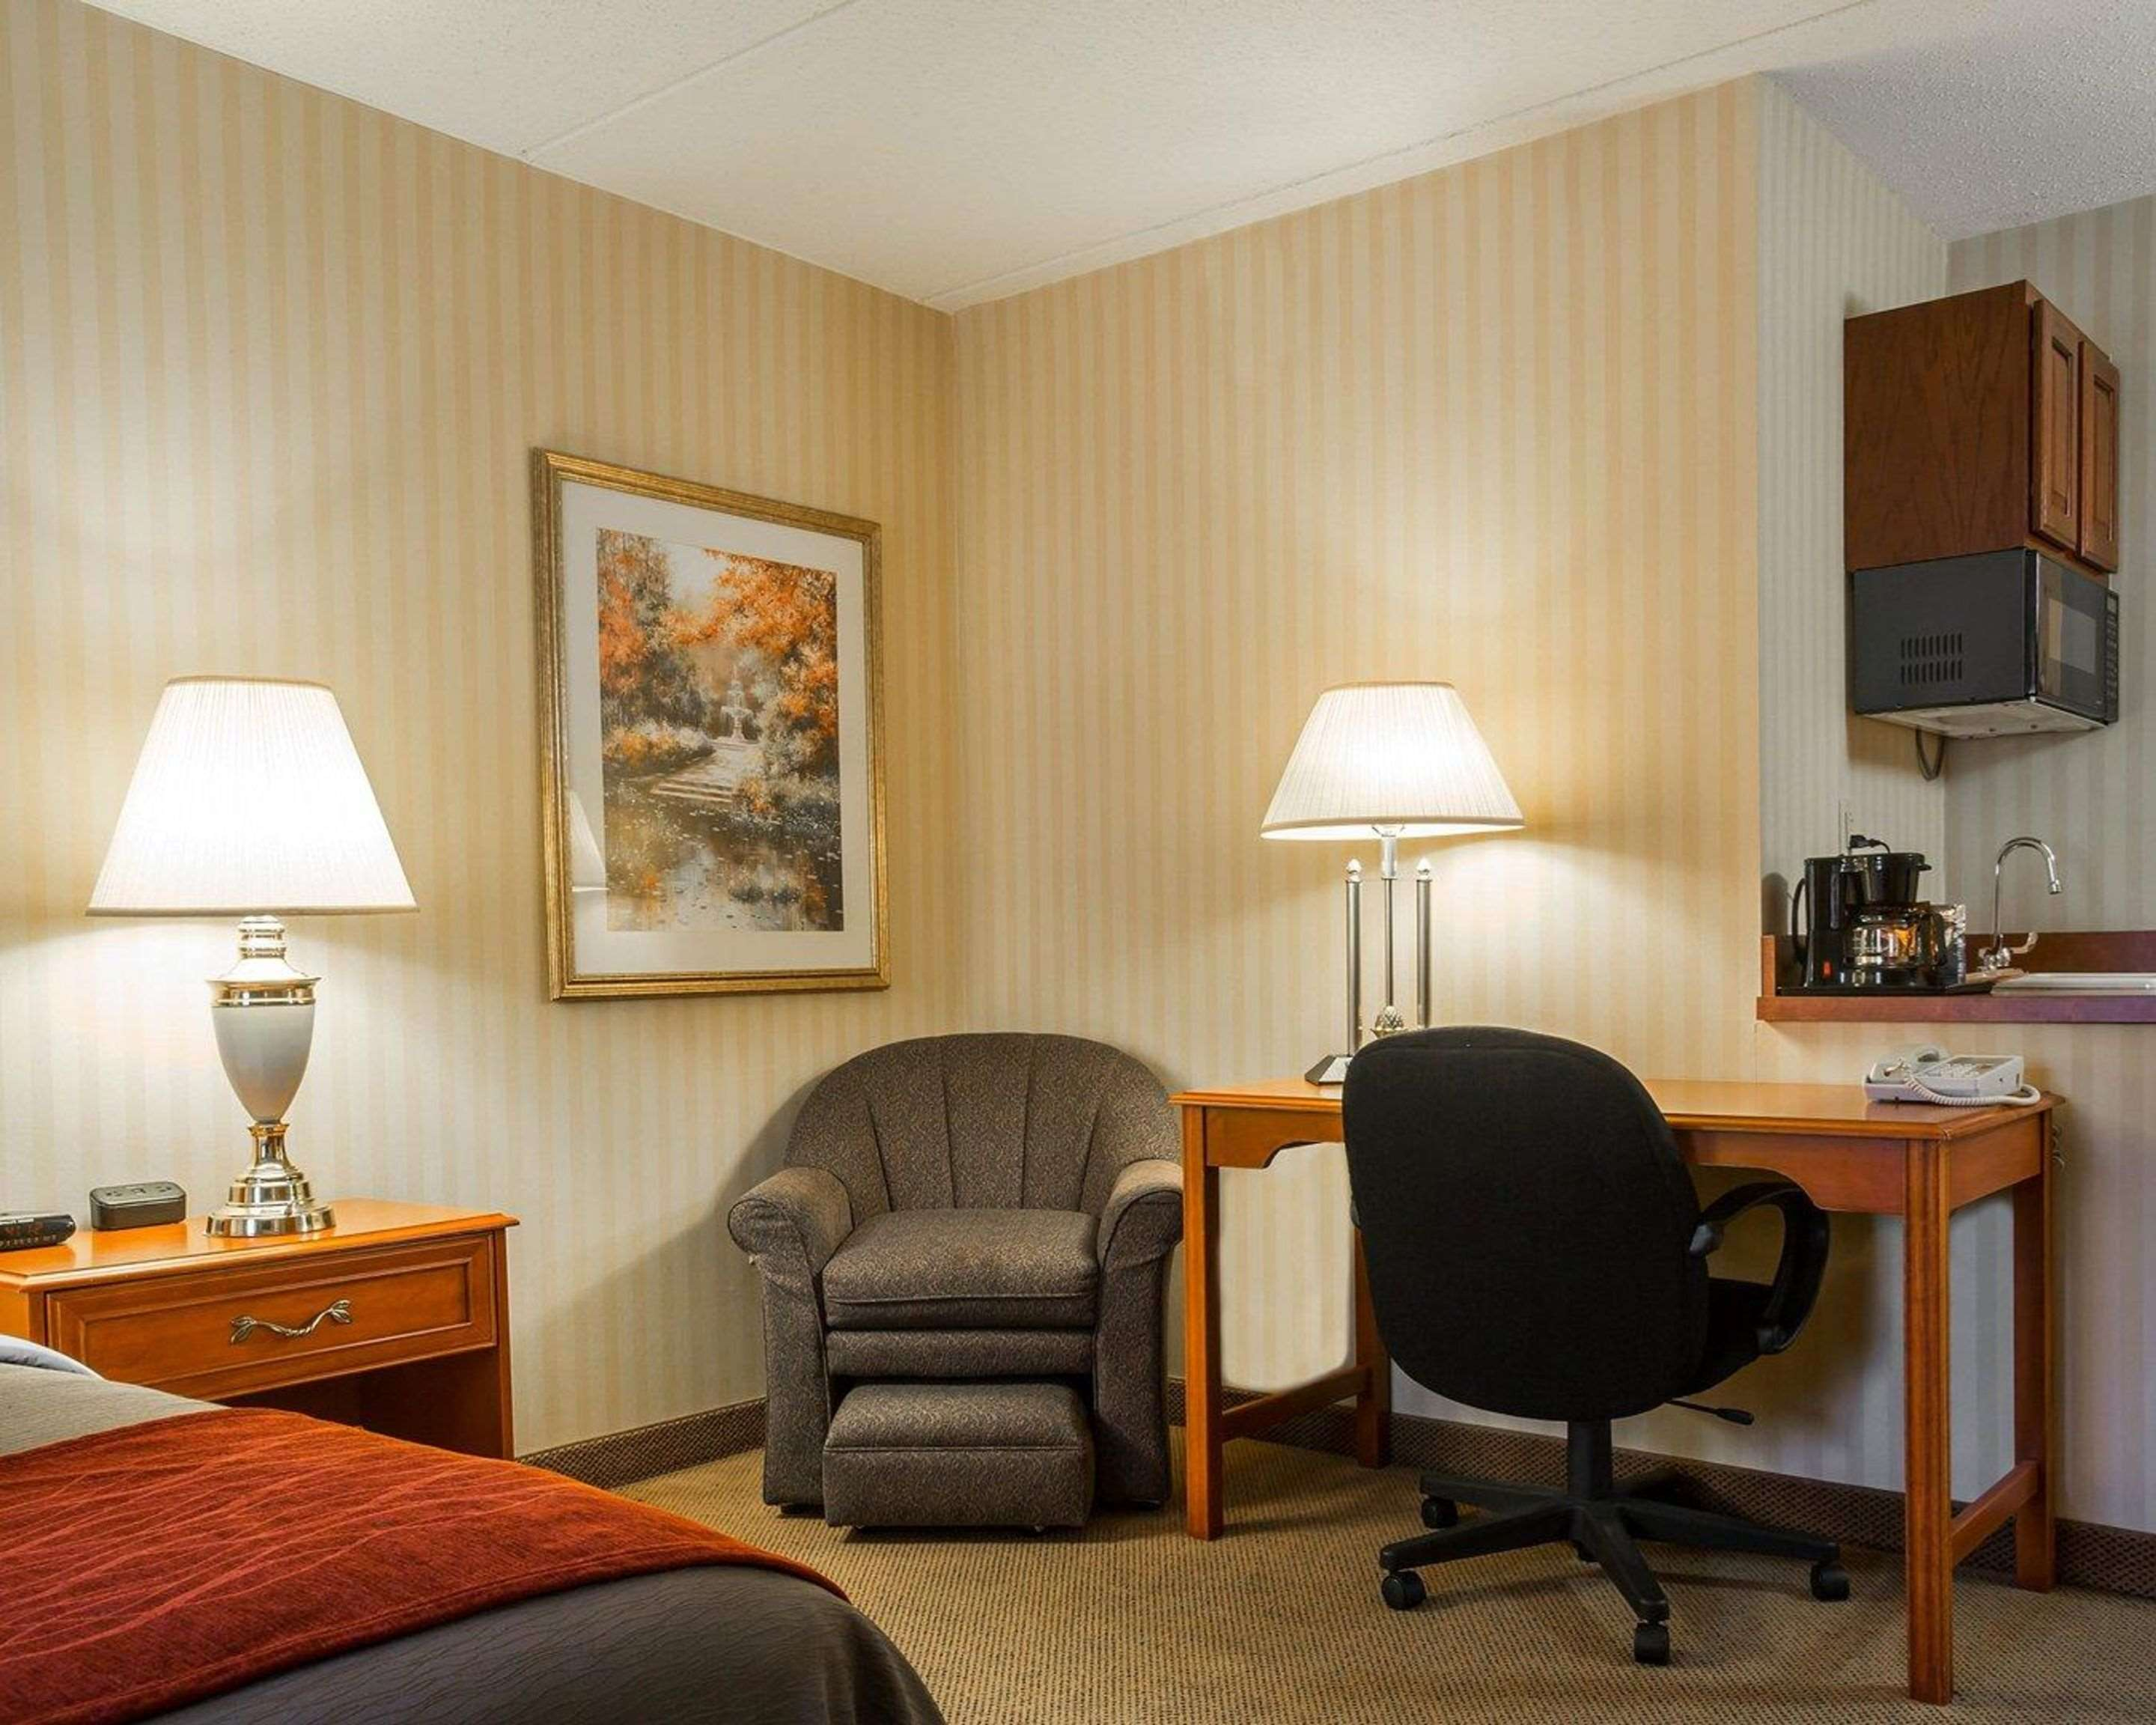 Guest room with desk area